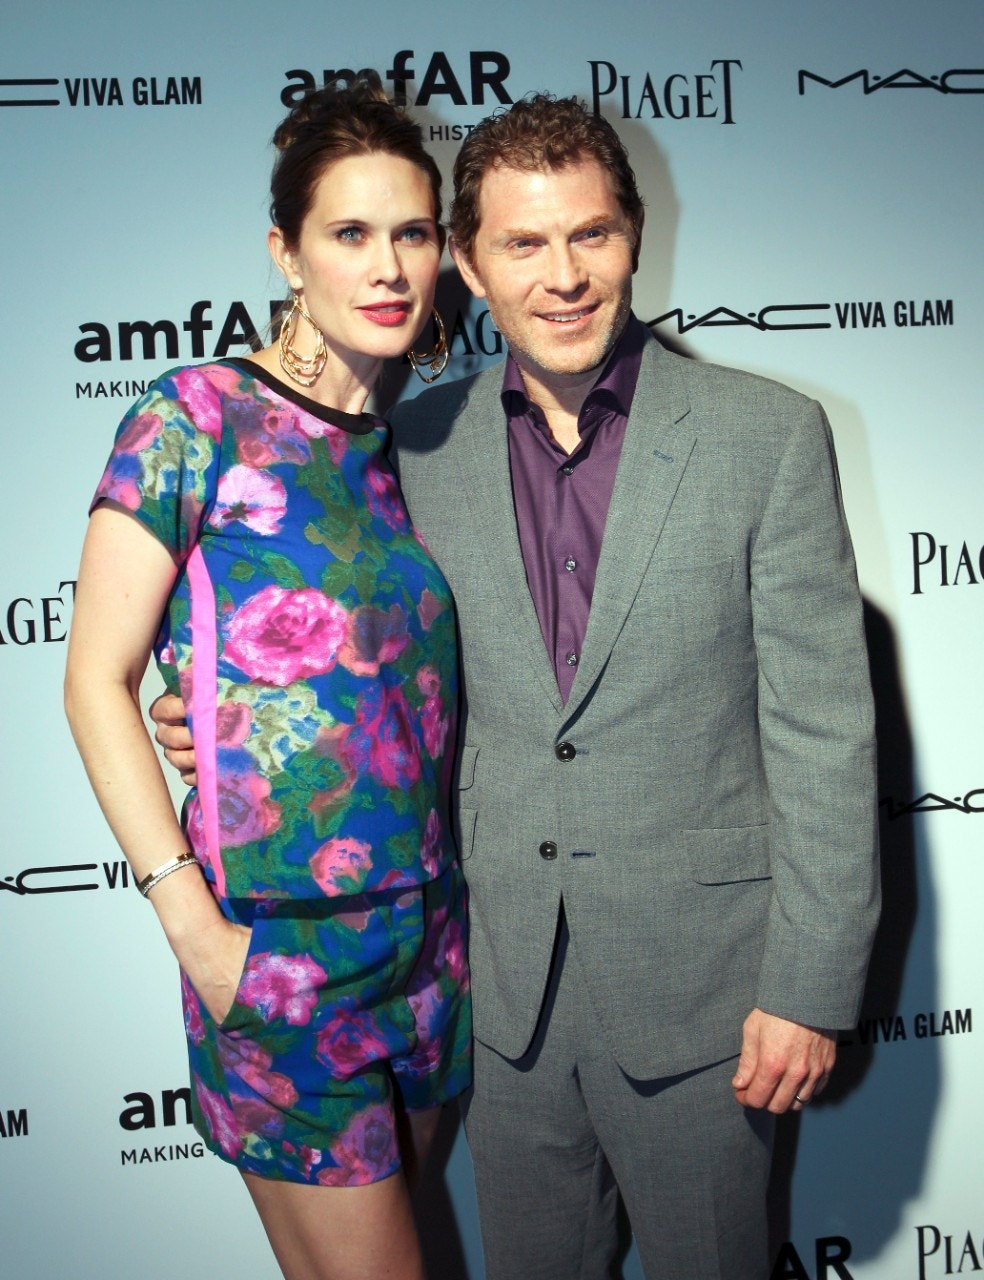 Bobby Flay reportedly had an affair that ruined his marriage to Stephanie March